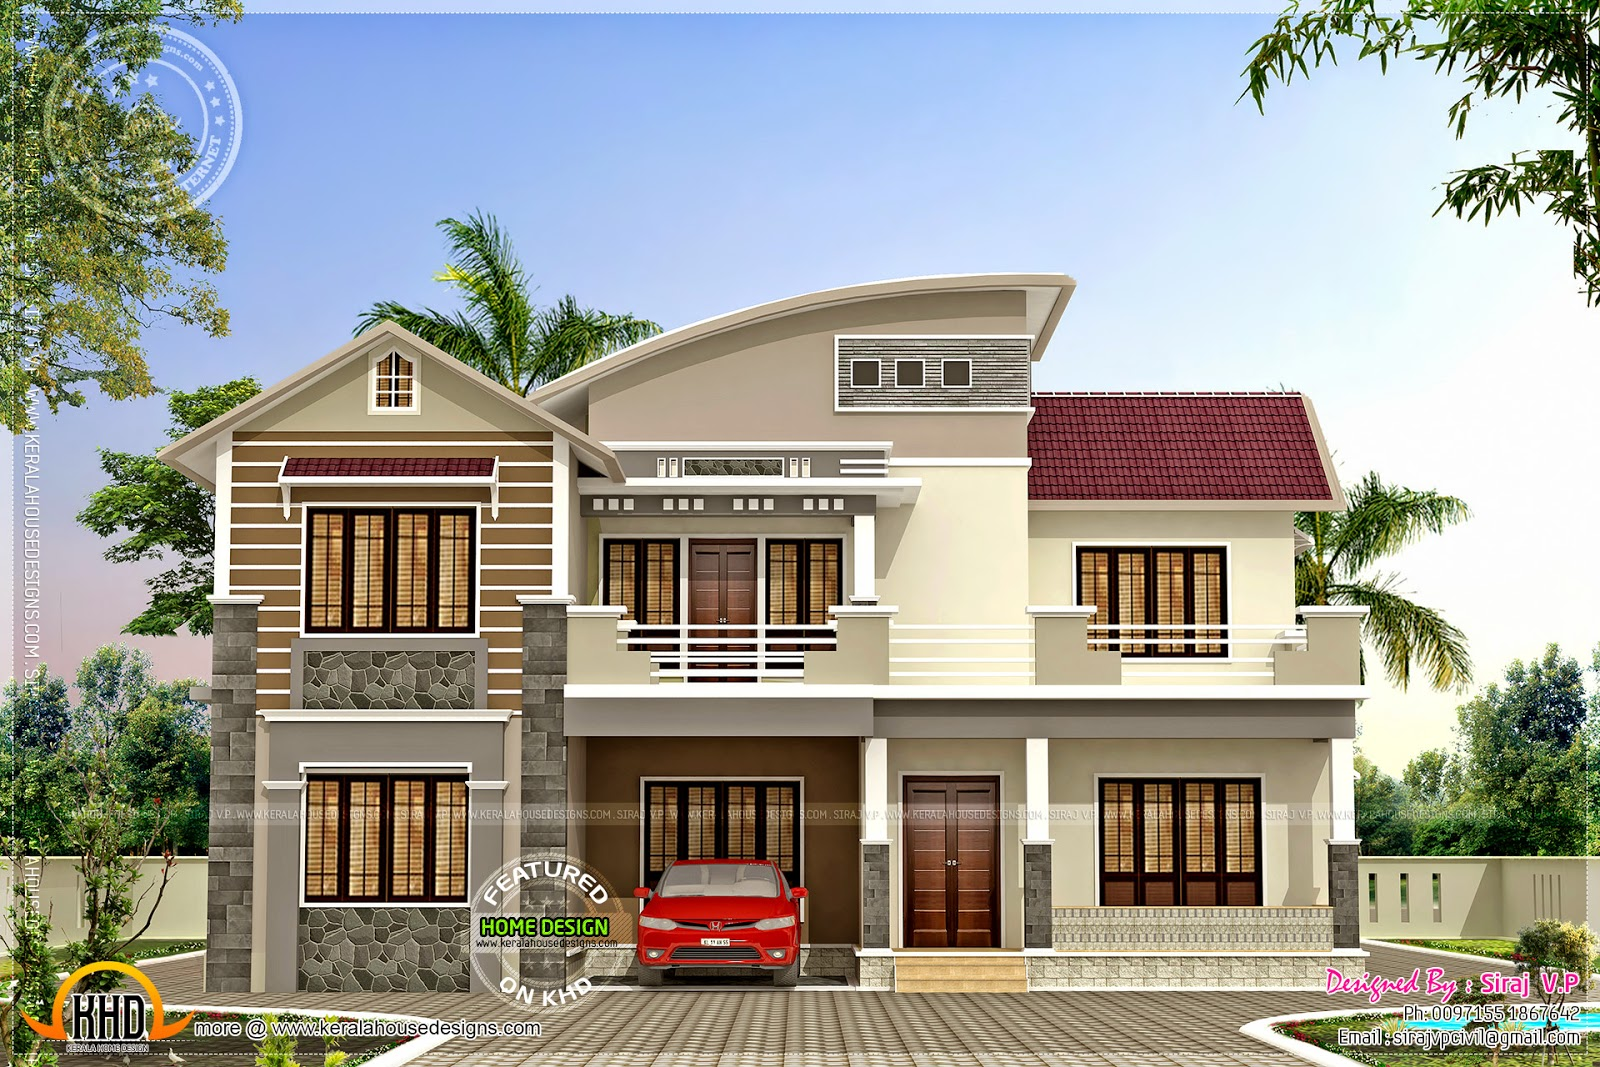 Beautiful little double storied house keralahousedesigns for Modern house plans 2400 sq ft